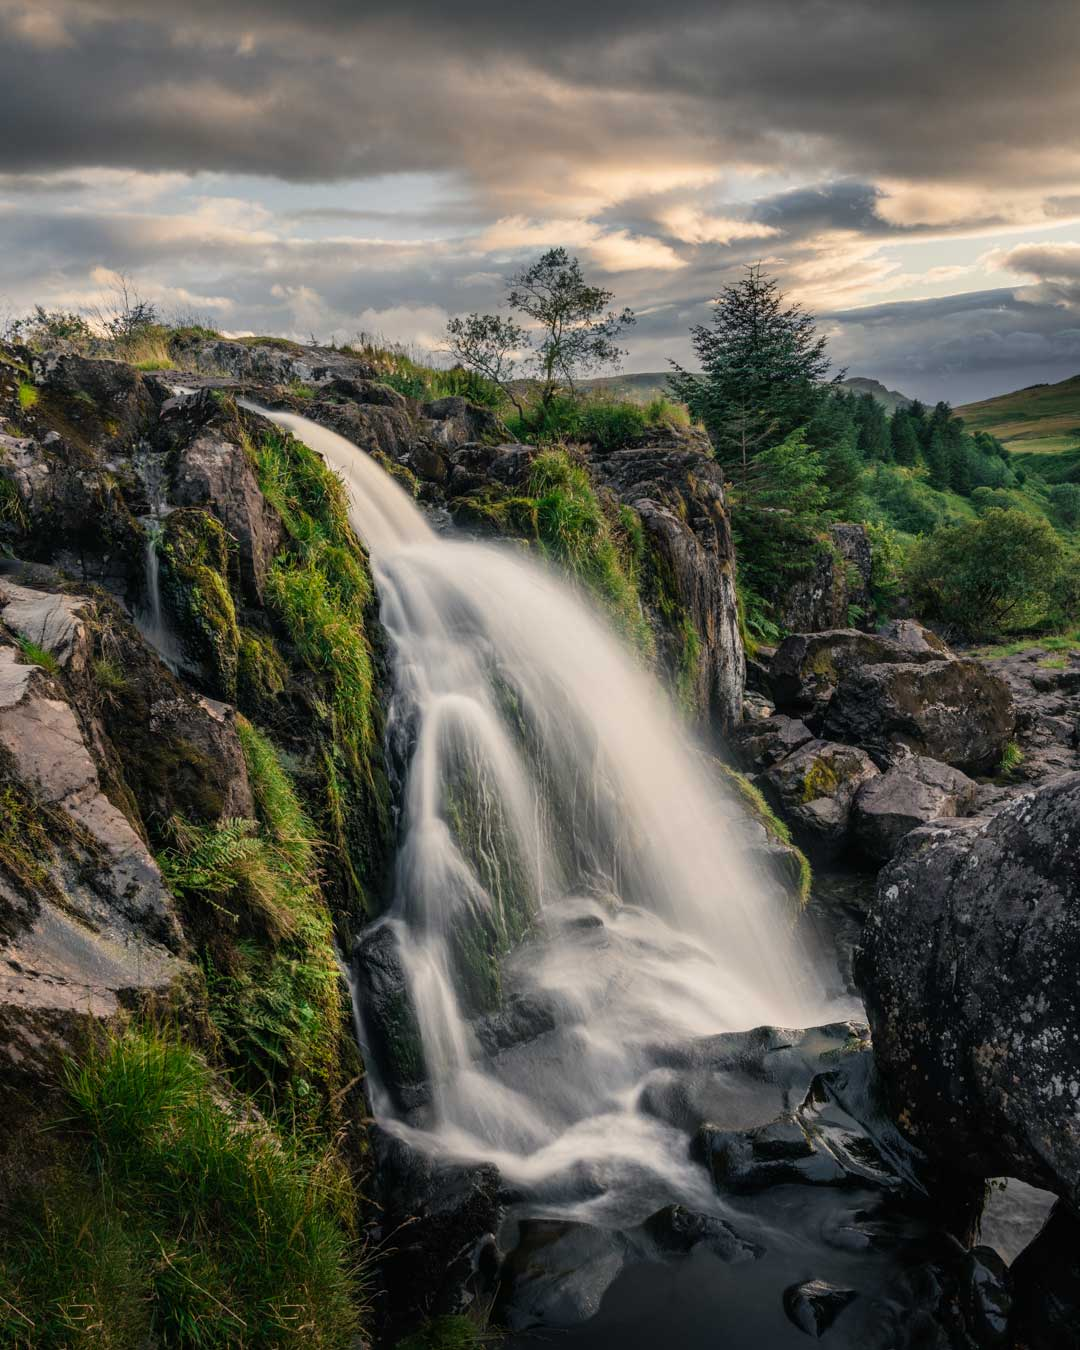 Loup of Fintry Waterfall in Stirling, Scotland, UK